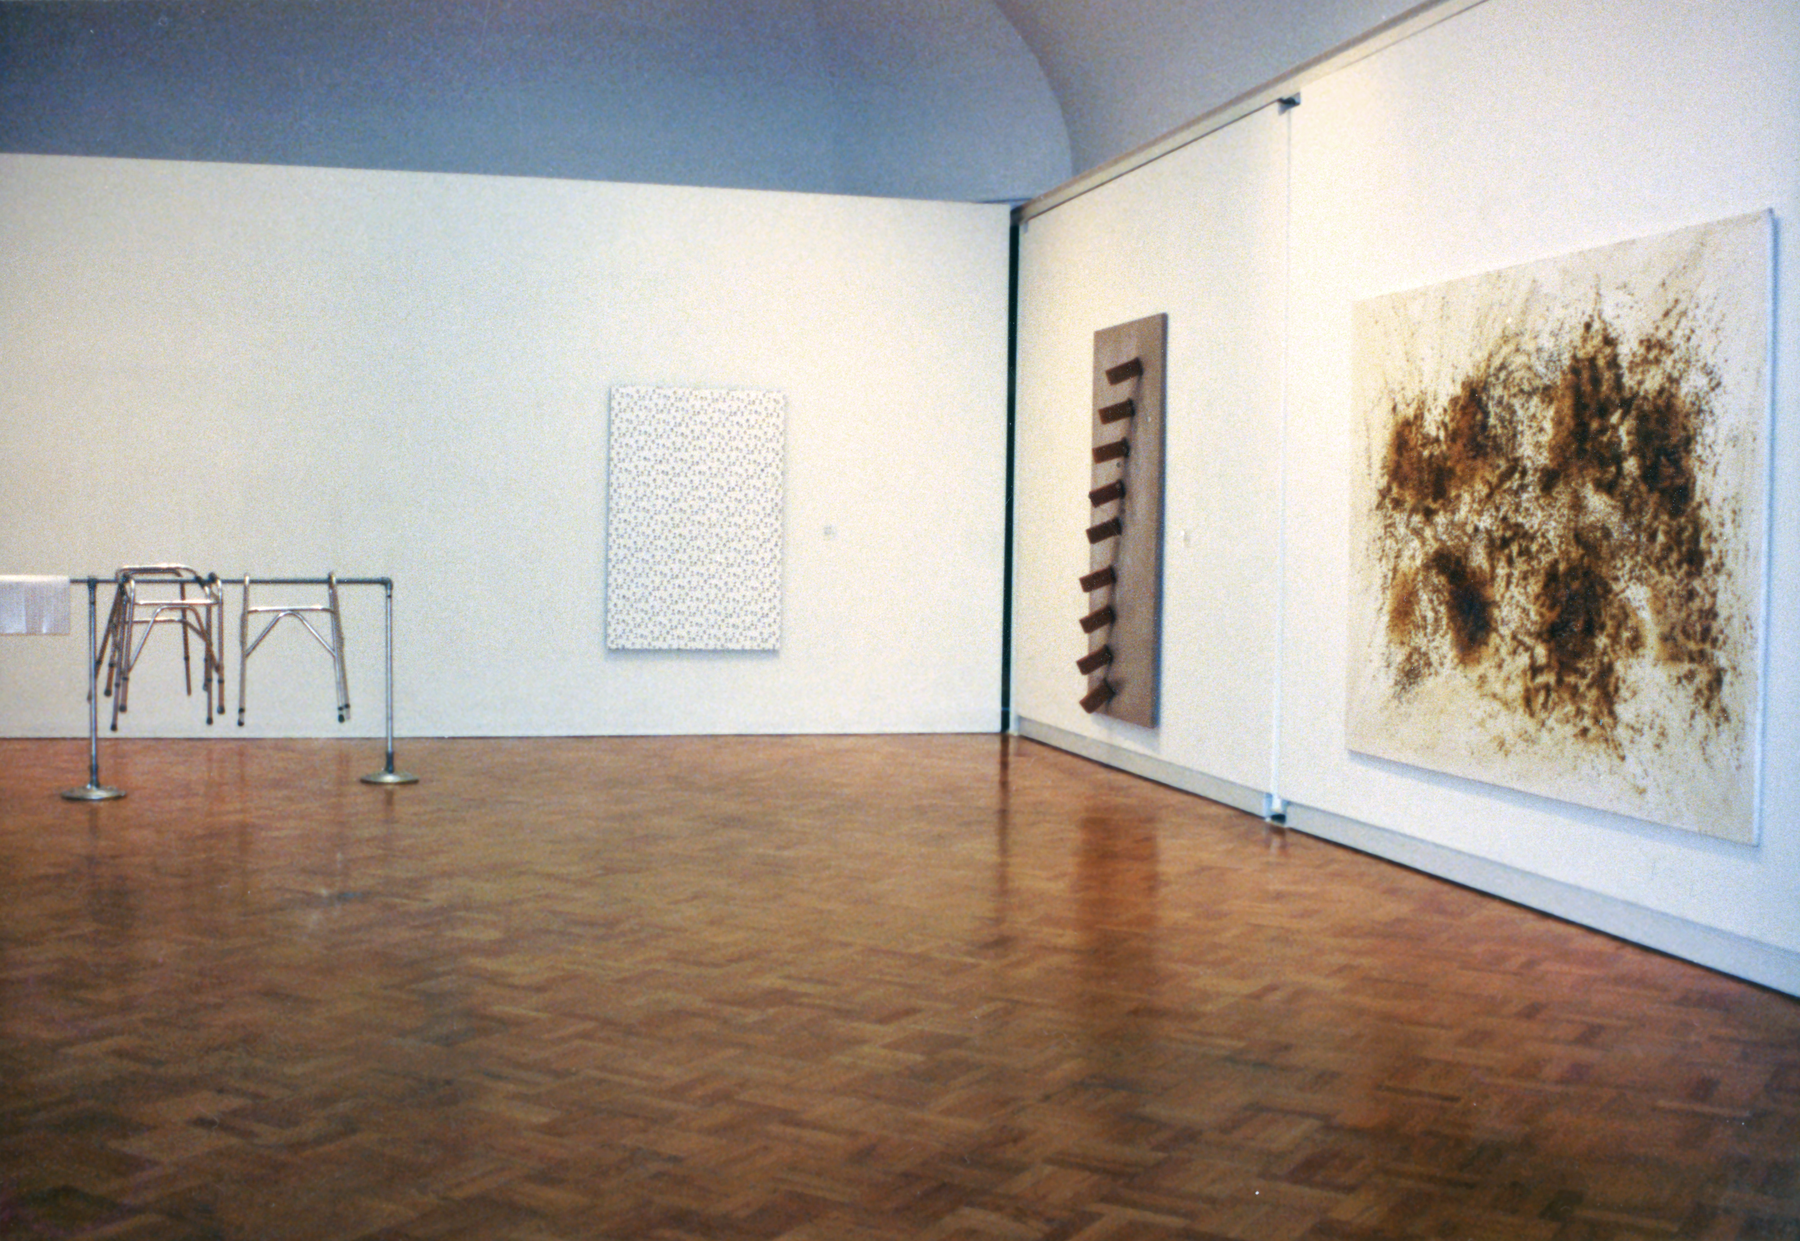 A gallery with one painting featuring dark brown smudges, a hanging steel sculpture with protruding cylinders, a hanging white artwork with a black pattern on it, and steel bars with steel furniture hanging on them.